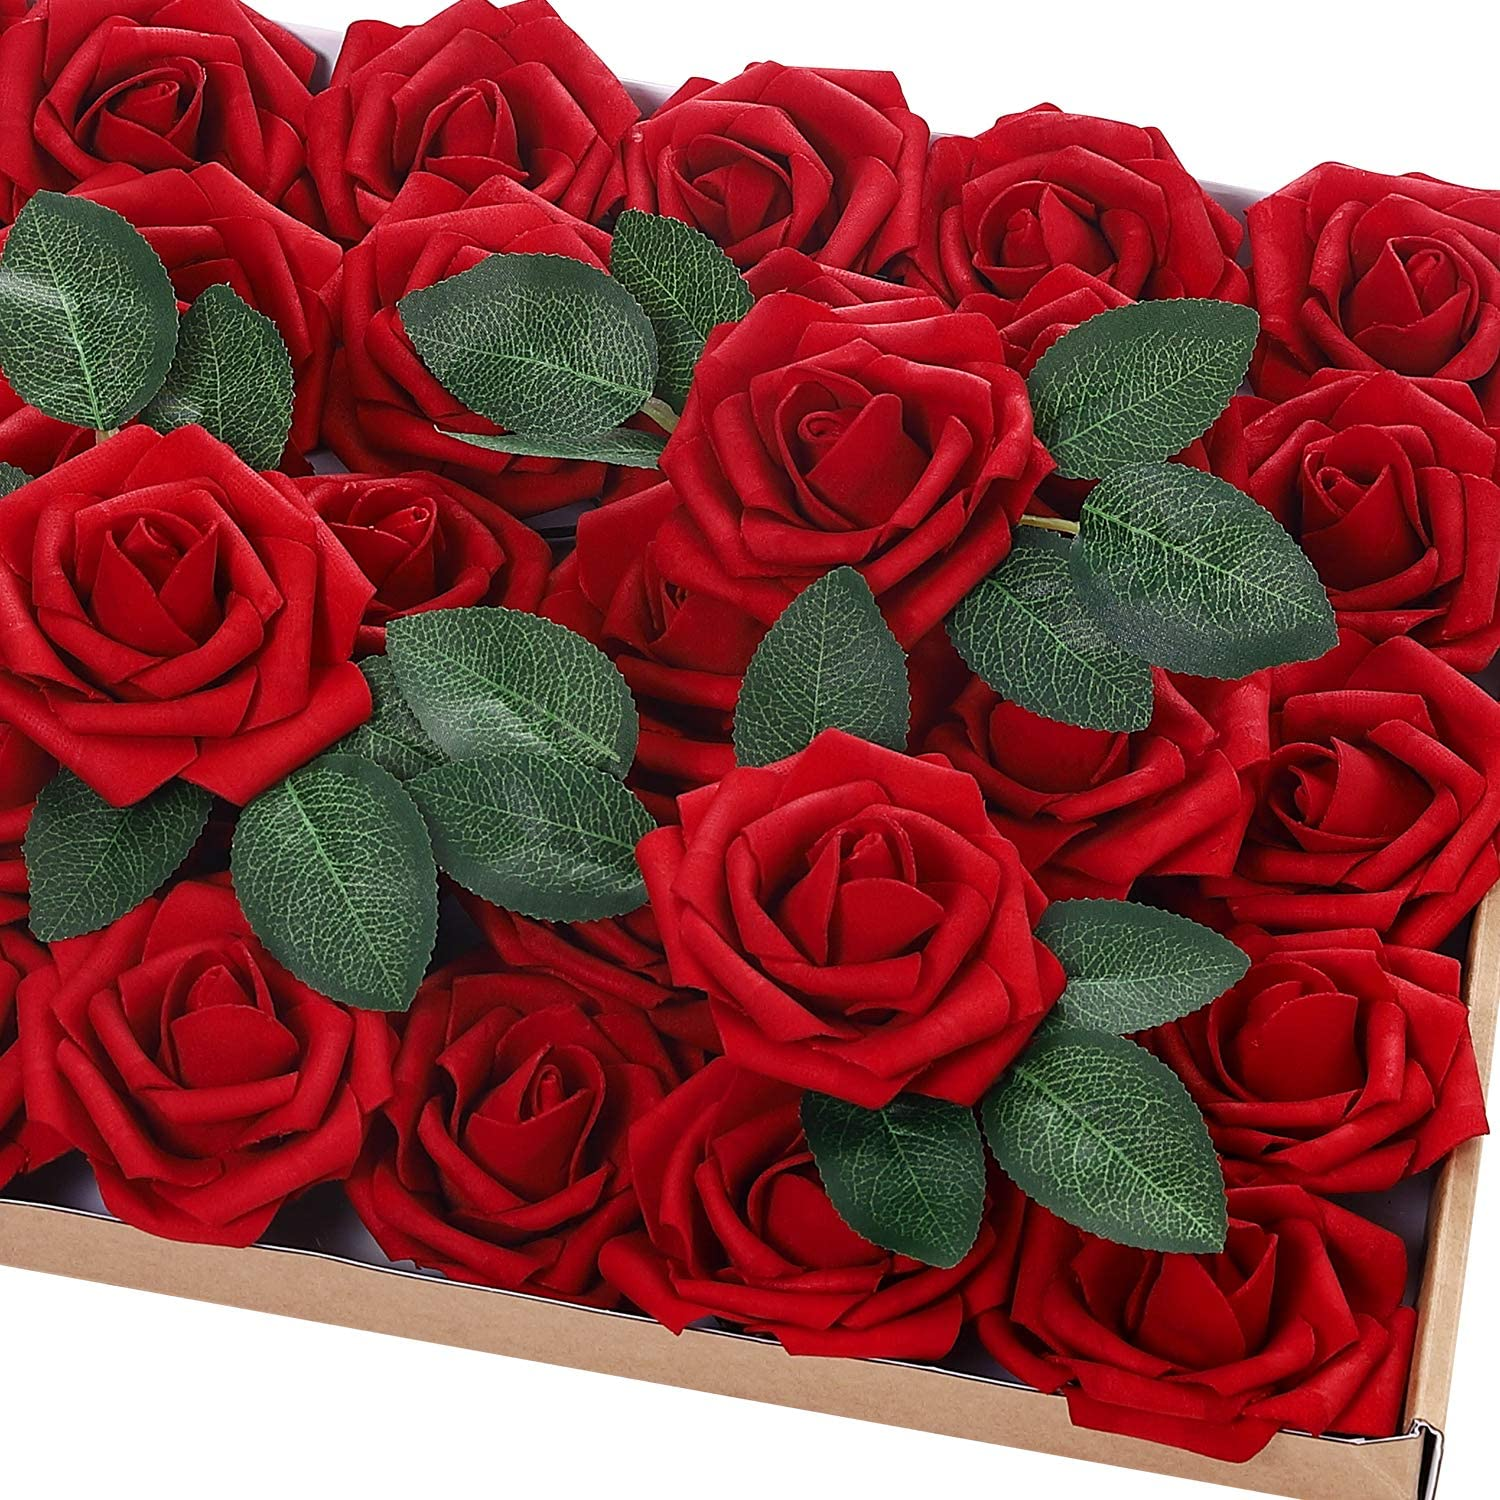 72Pcs Artificial Rose Flowers High quality Rapid rise with 20 Leaves Stem Re Decorative